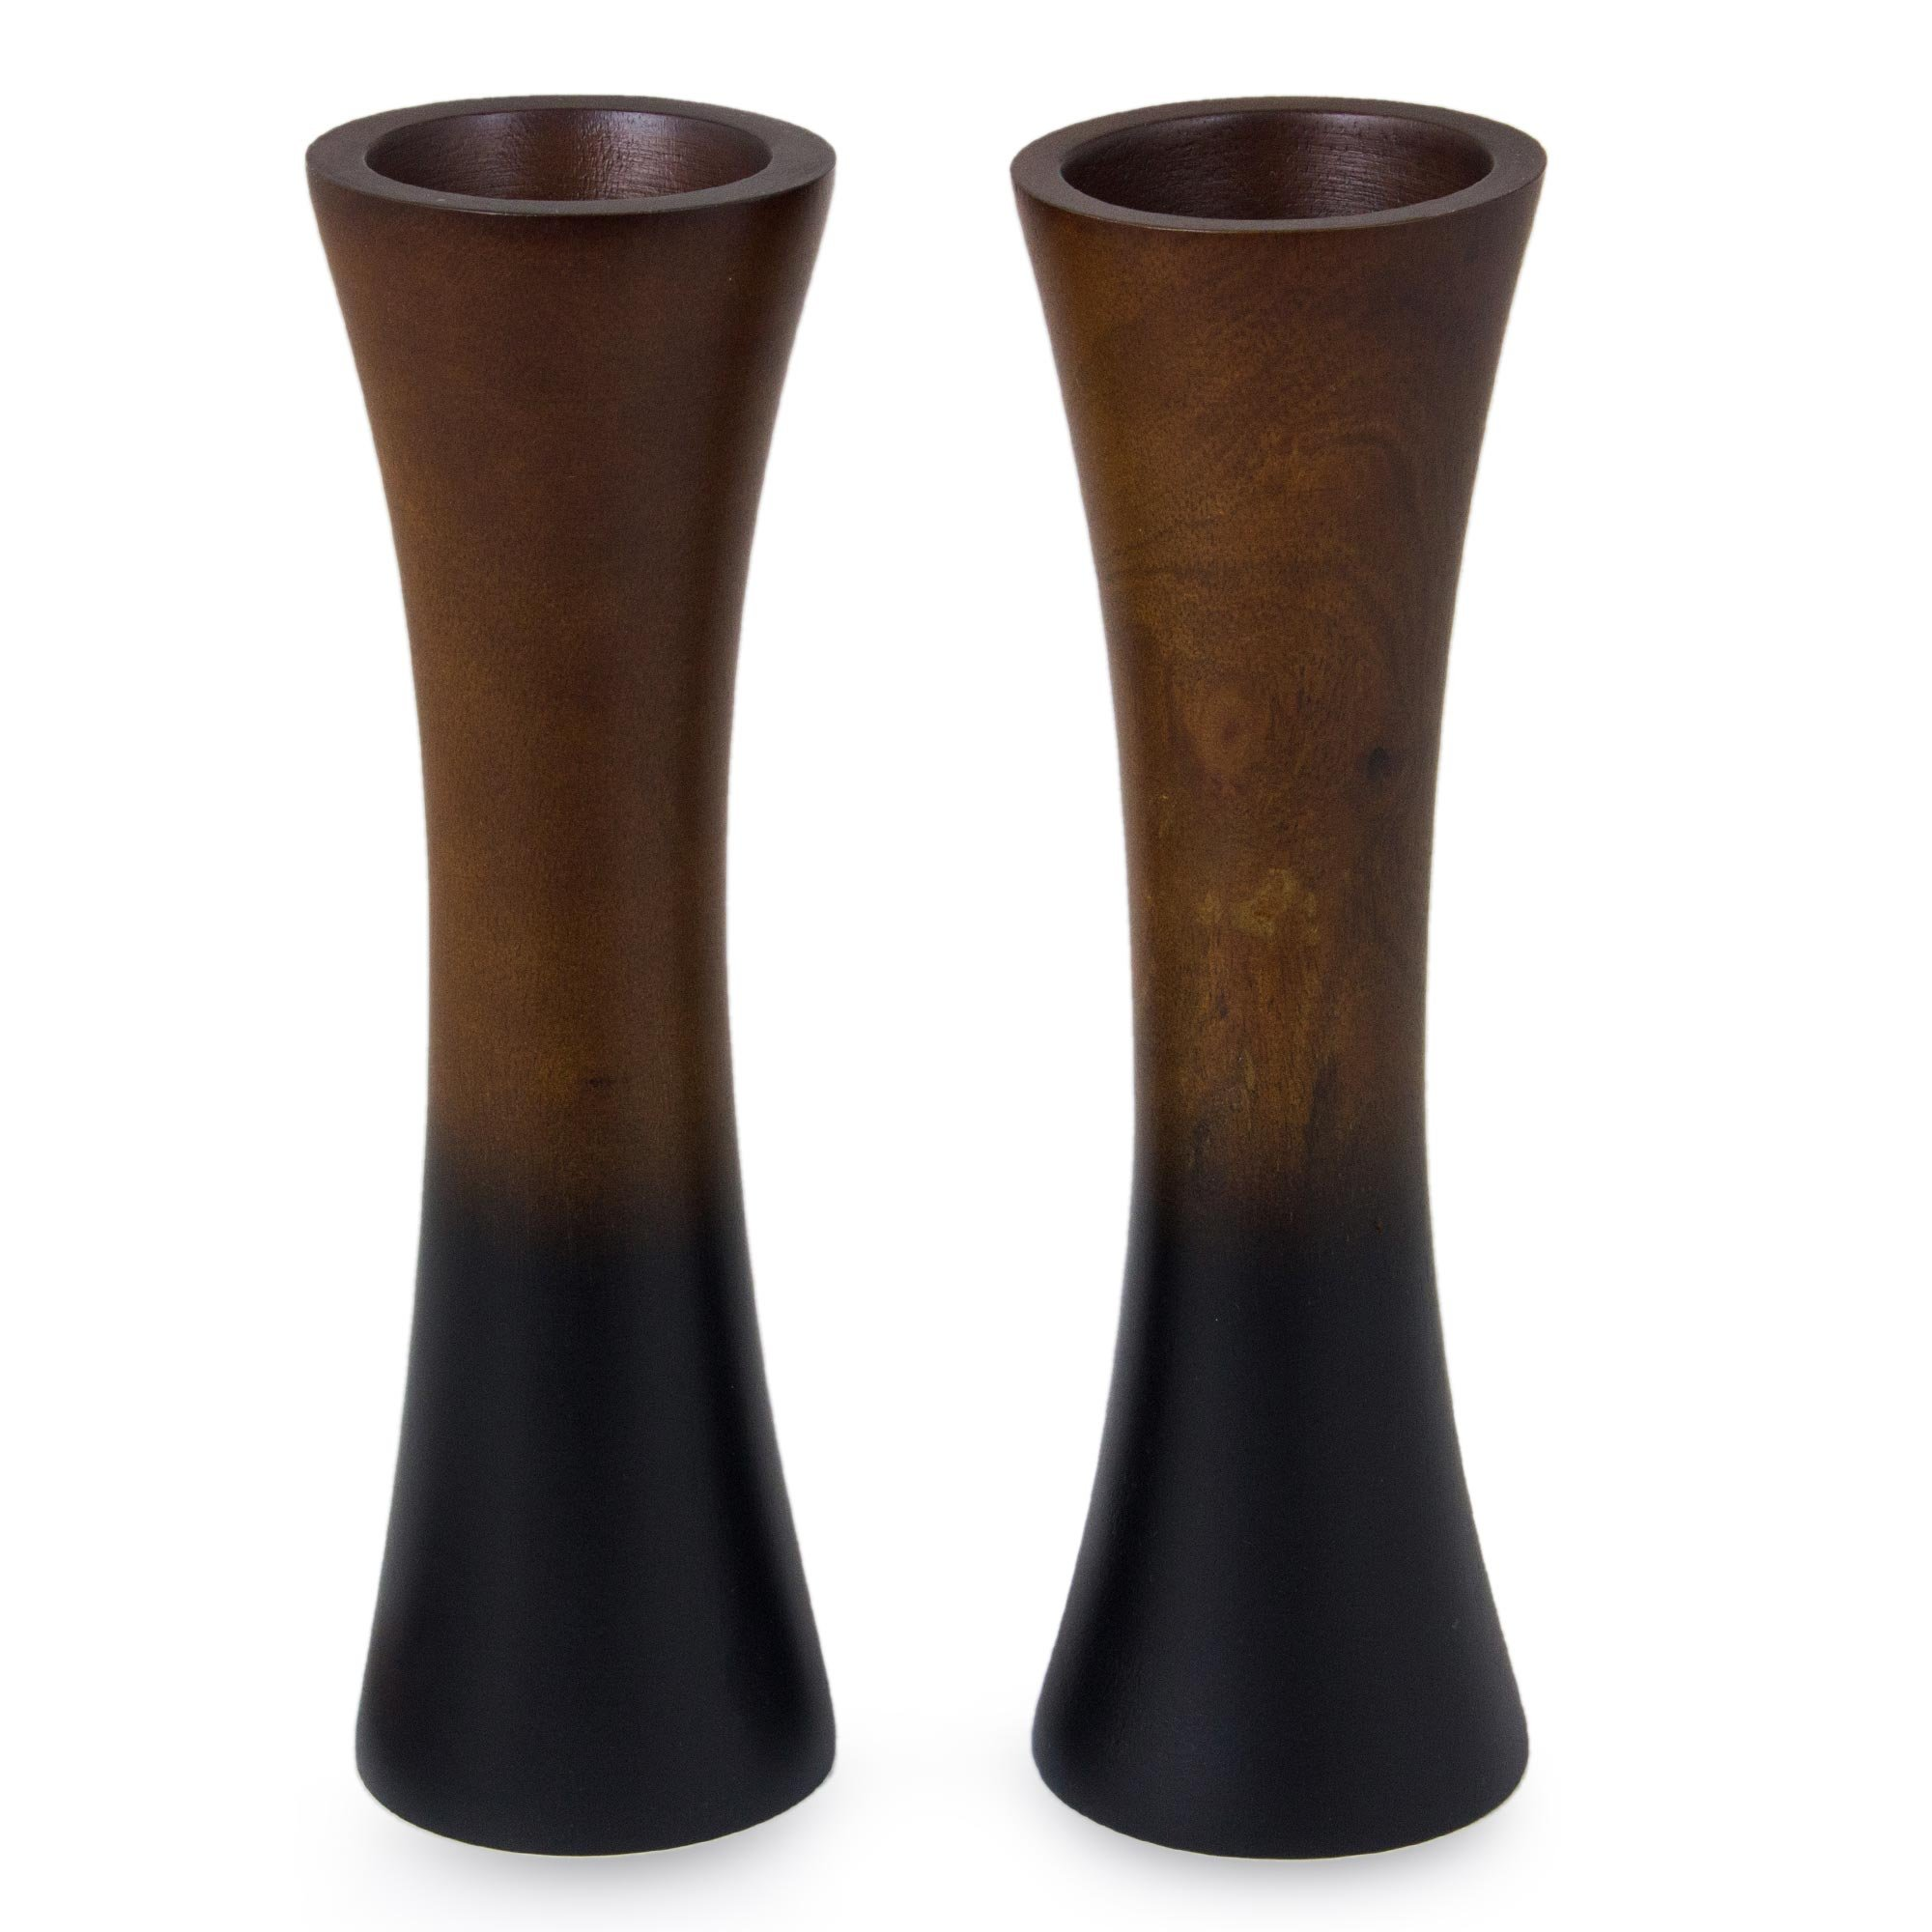 NOVICA ''Thai Trumpets 2 Piece Mango Wood Vases by NOVICA